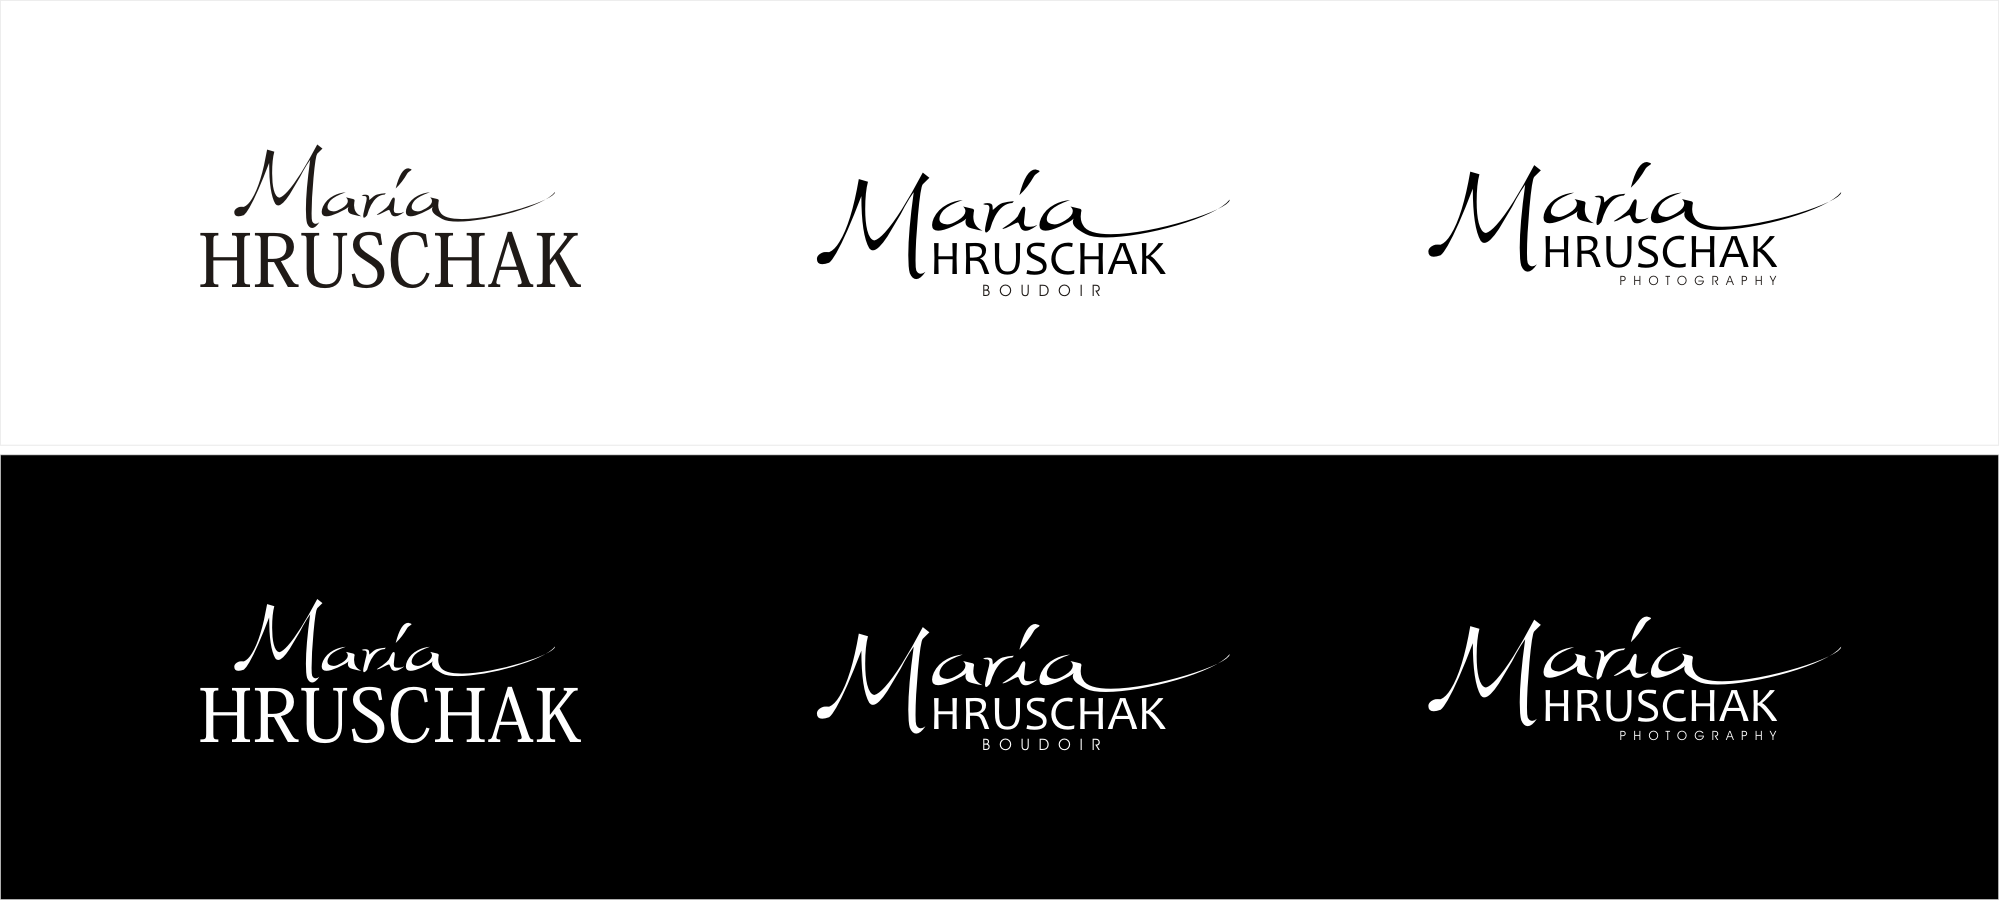 New logo wanted for Maria Hruschak